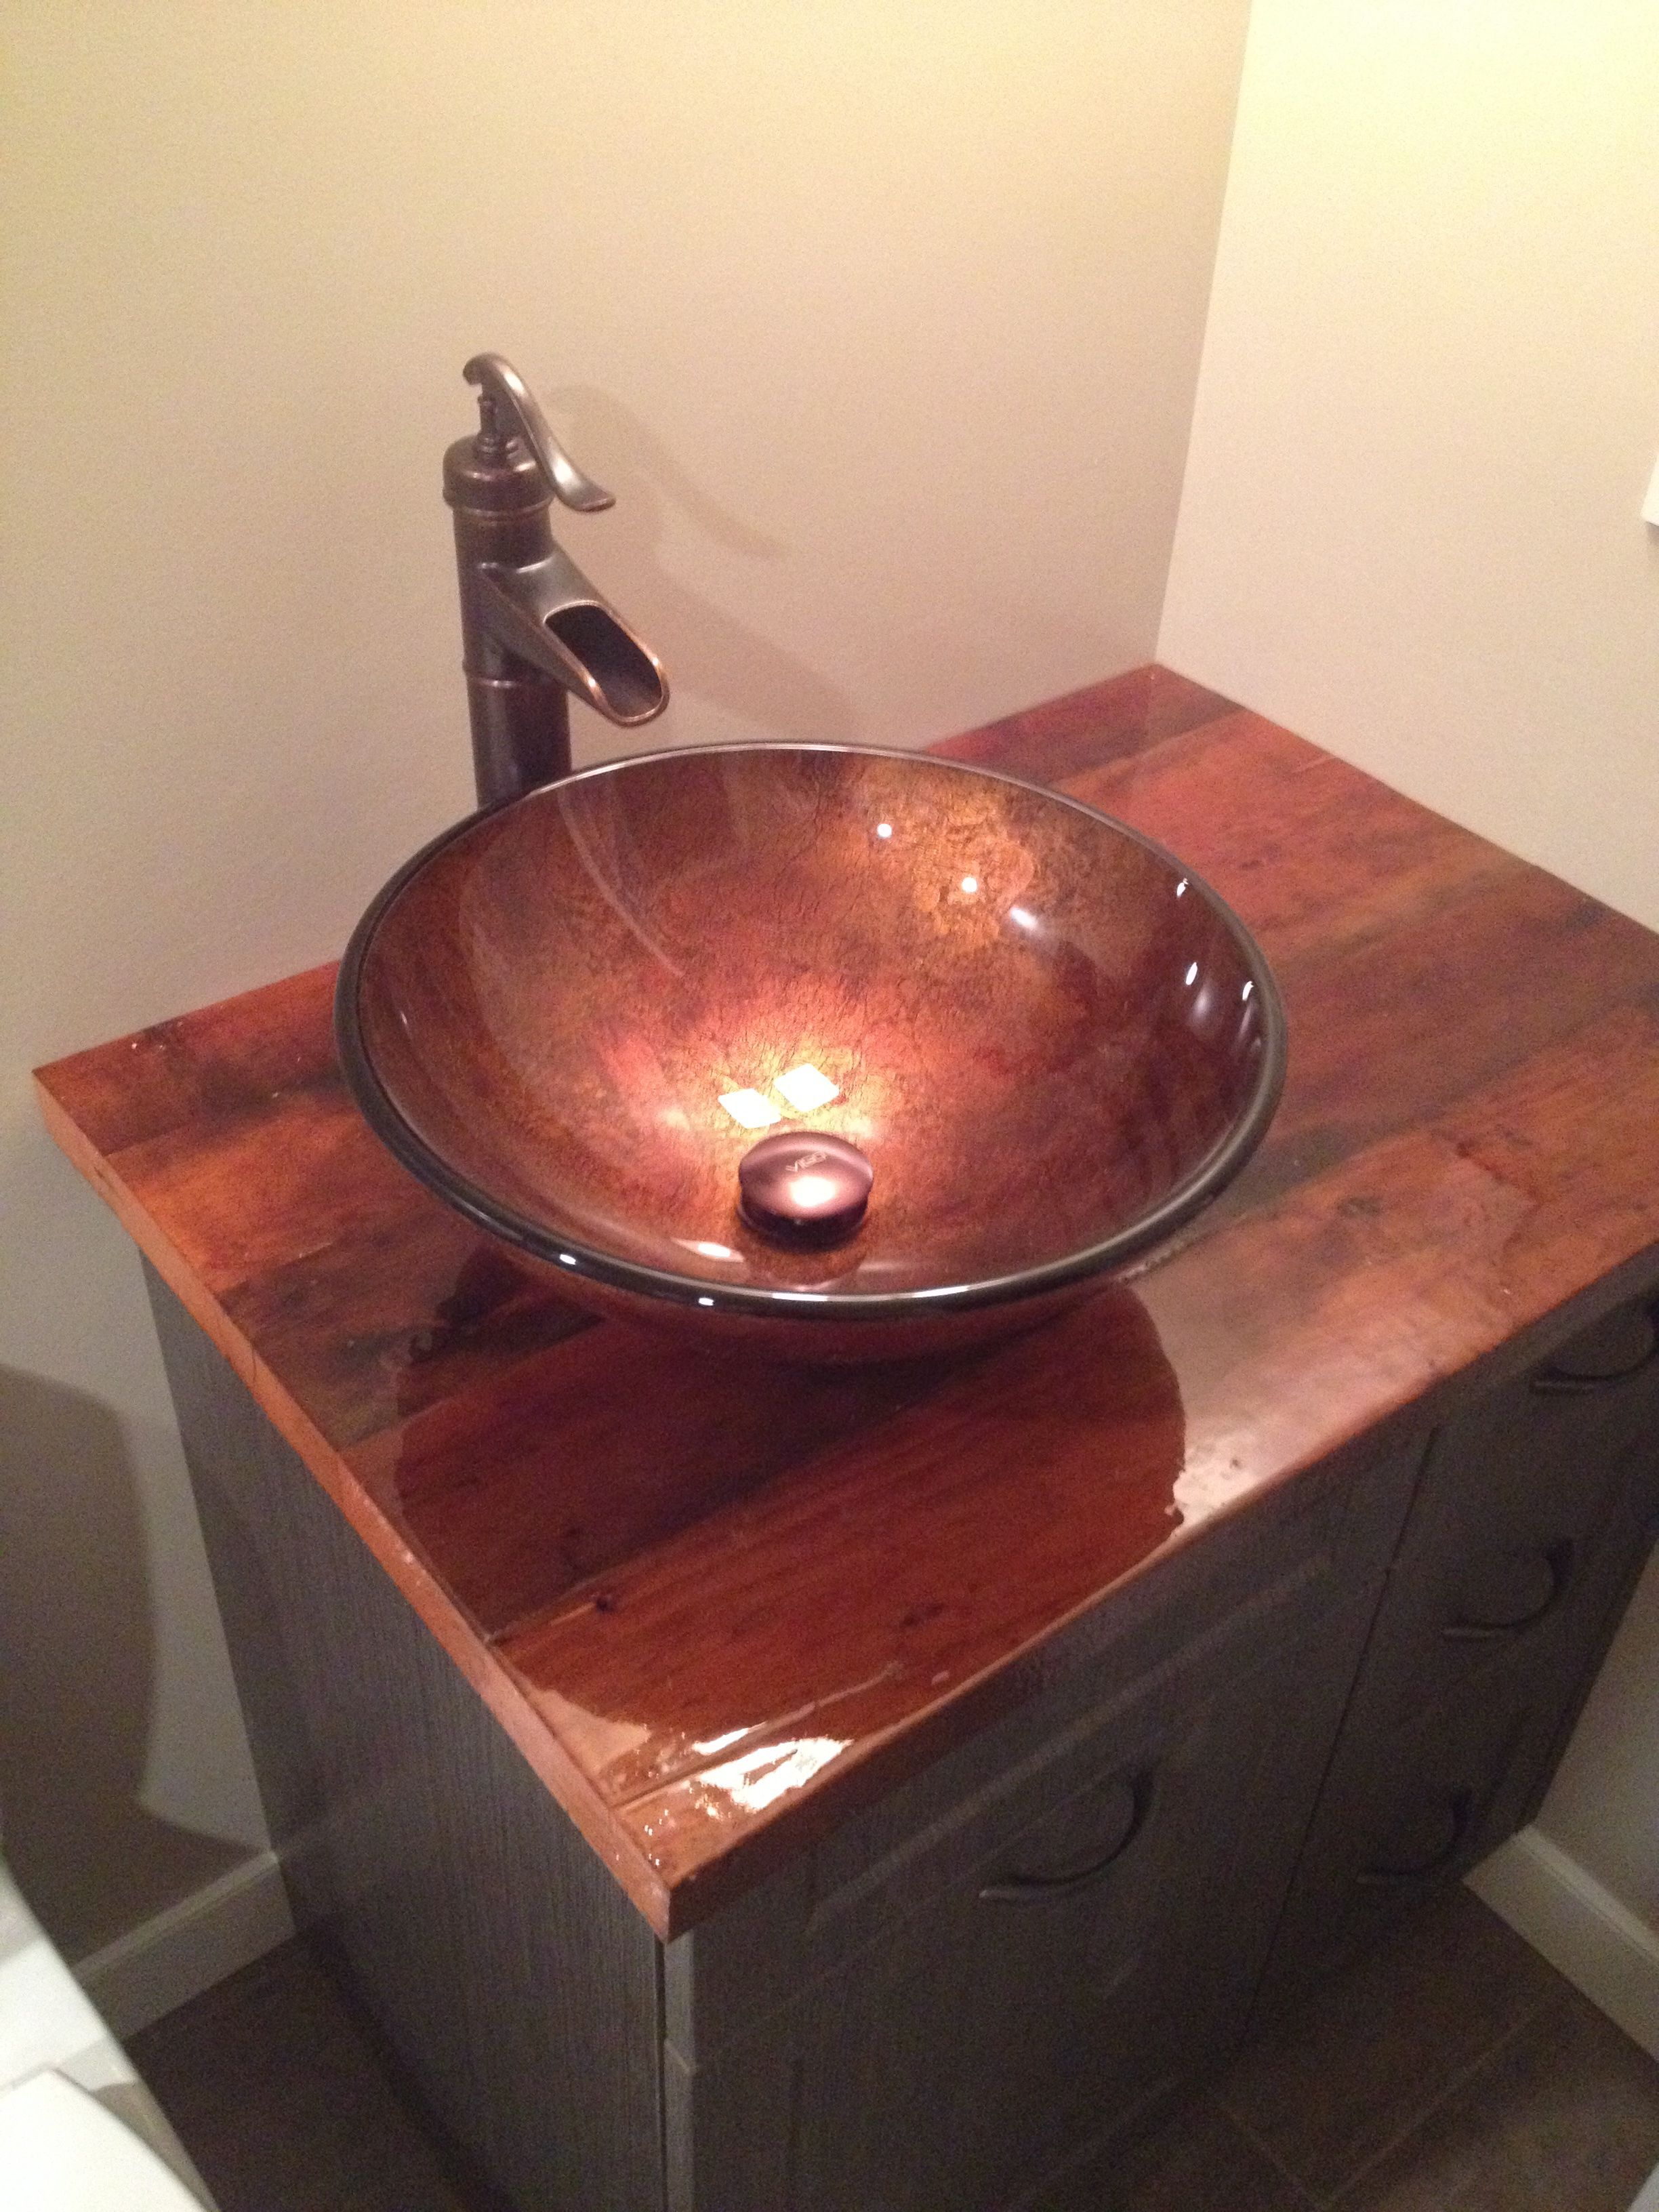 Bathroom Vanity Countertop Made From Fir Timbers Salvaged From A